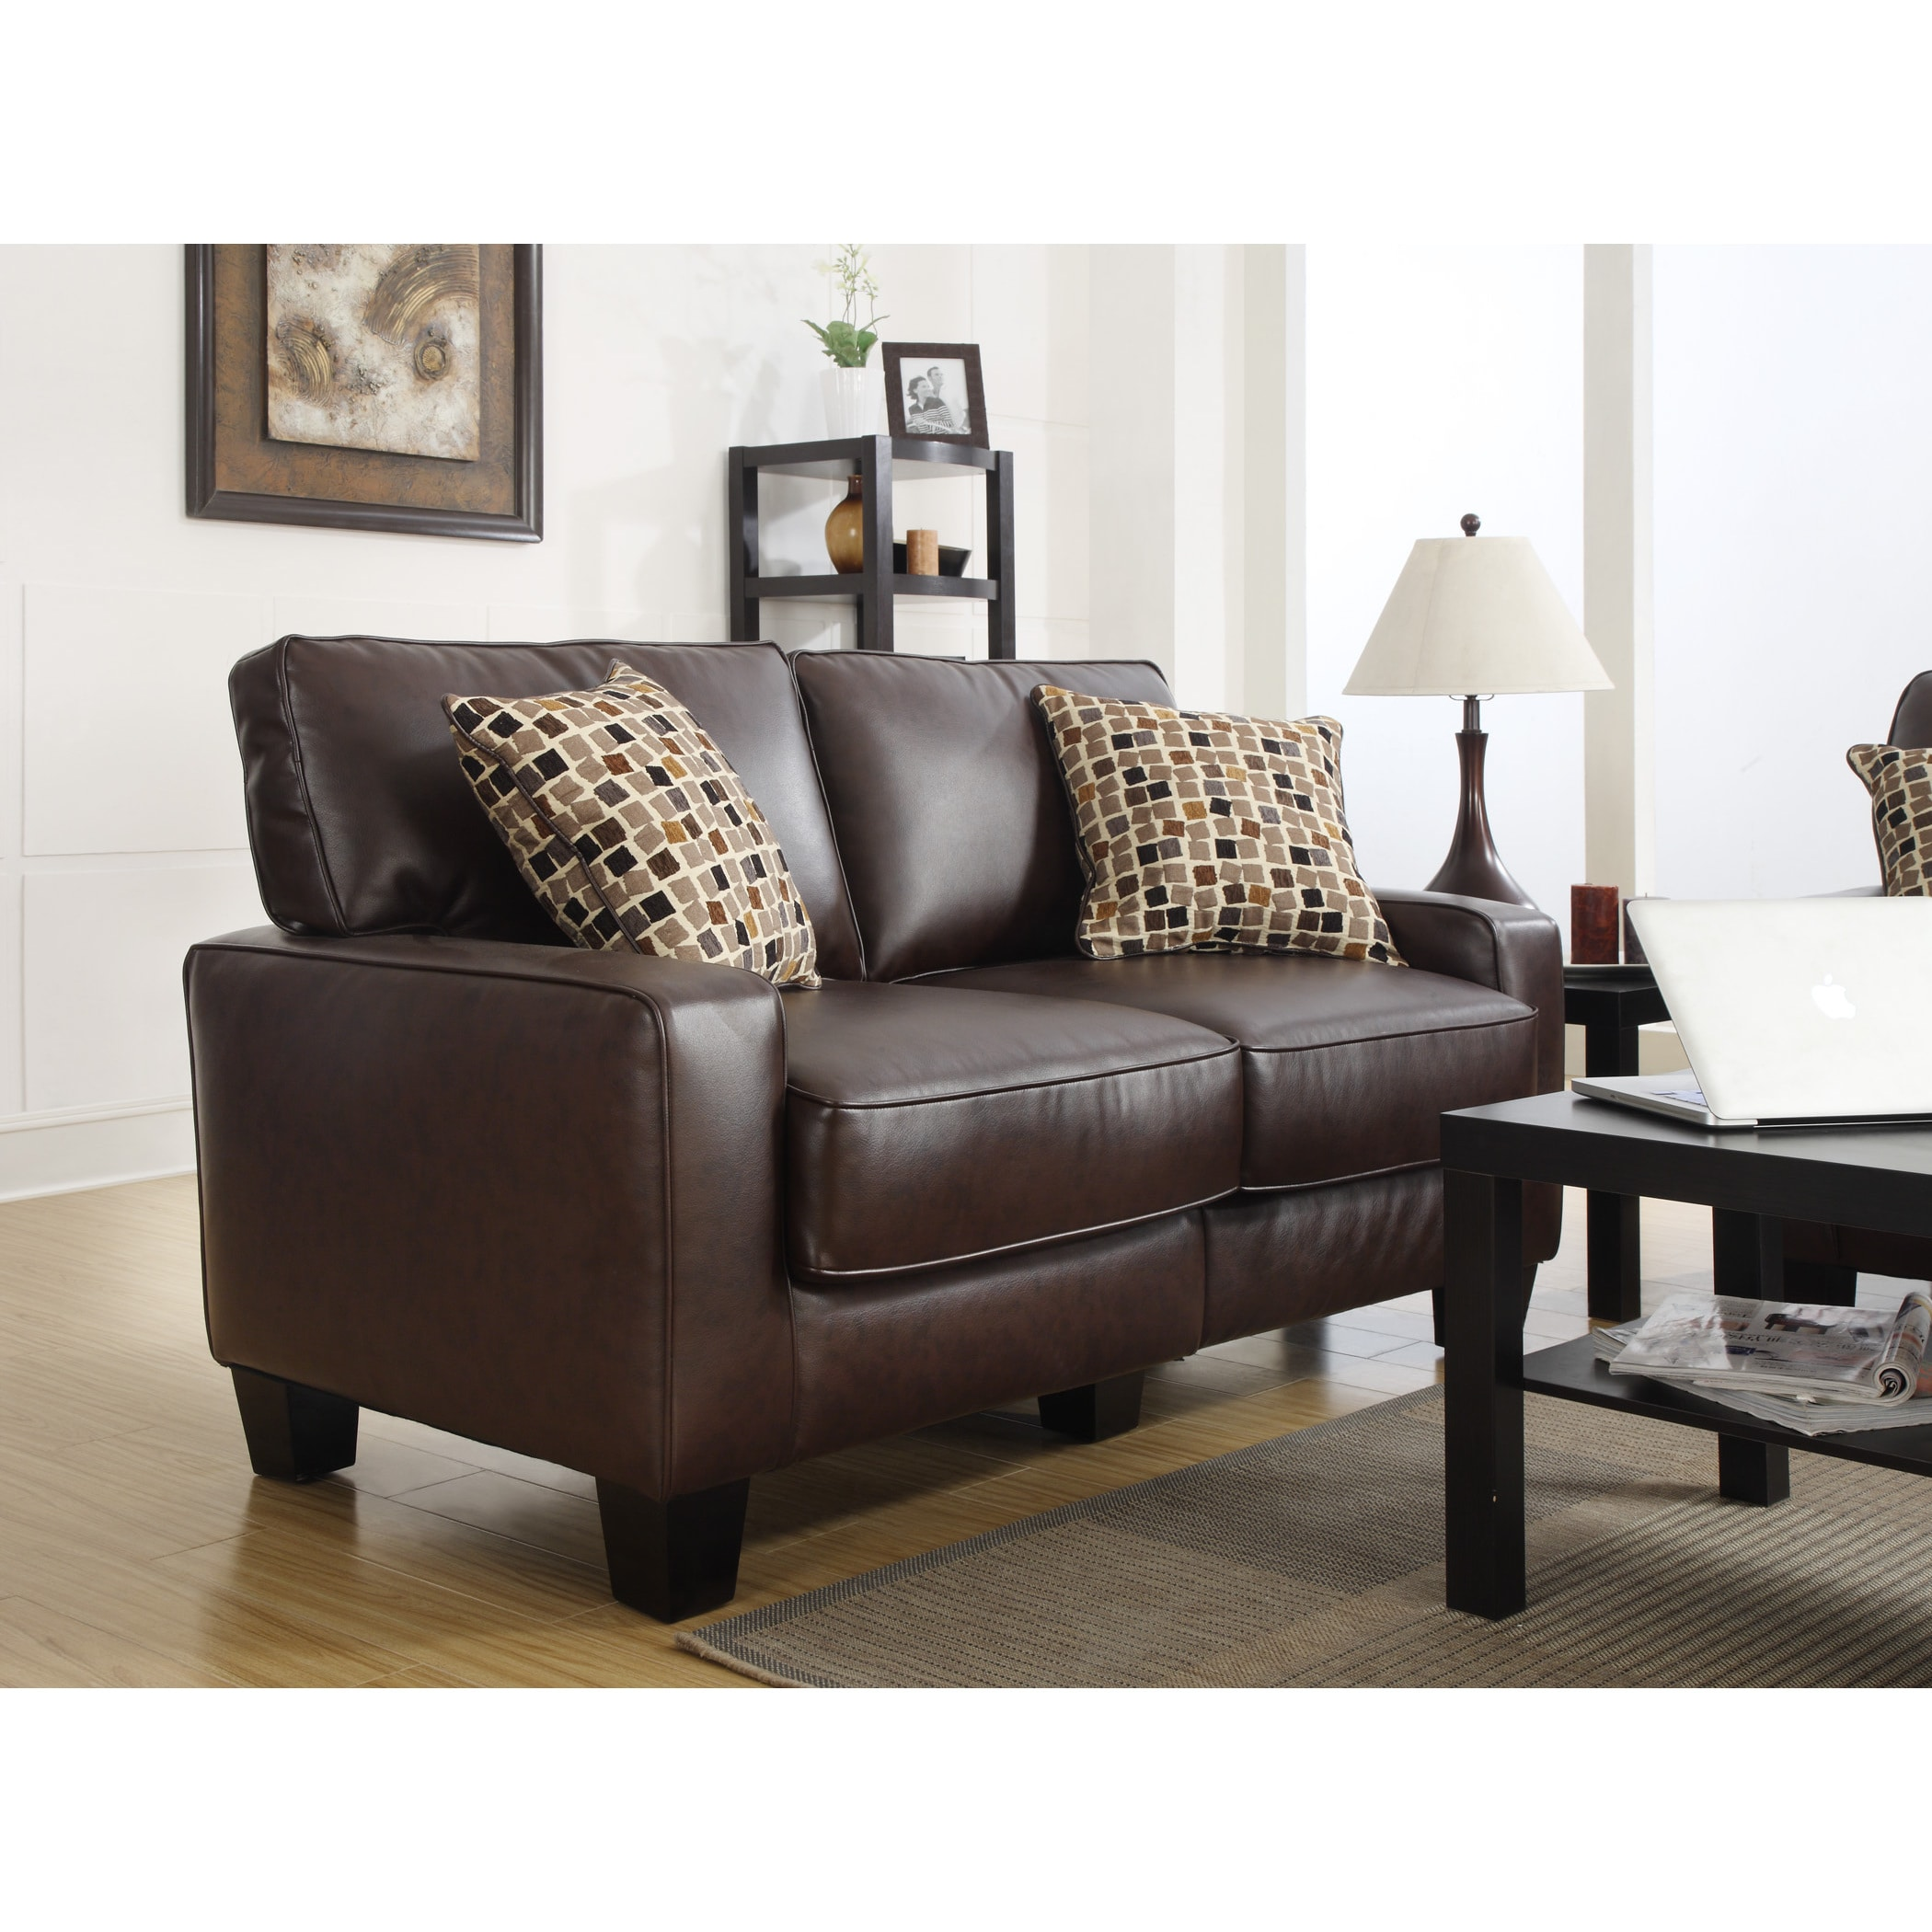 Serta Rta Monaco Collection 60 Inch Brown Leather Sofa Free Shipping Today 9088995